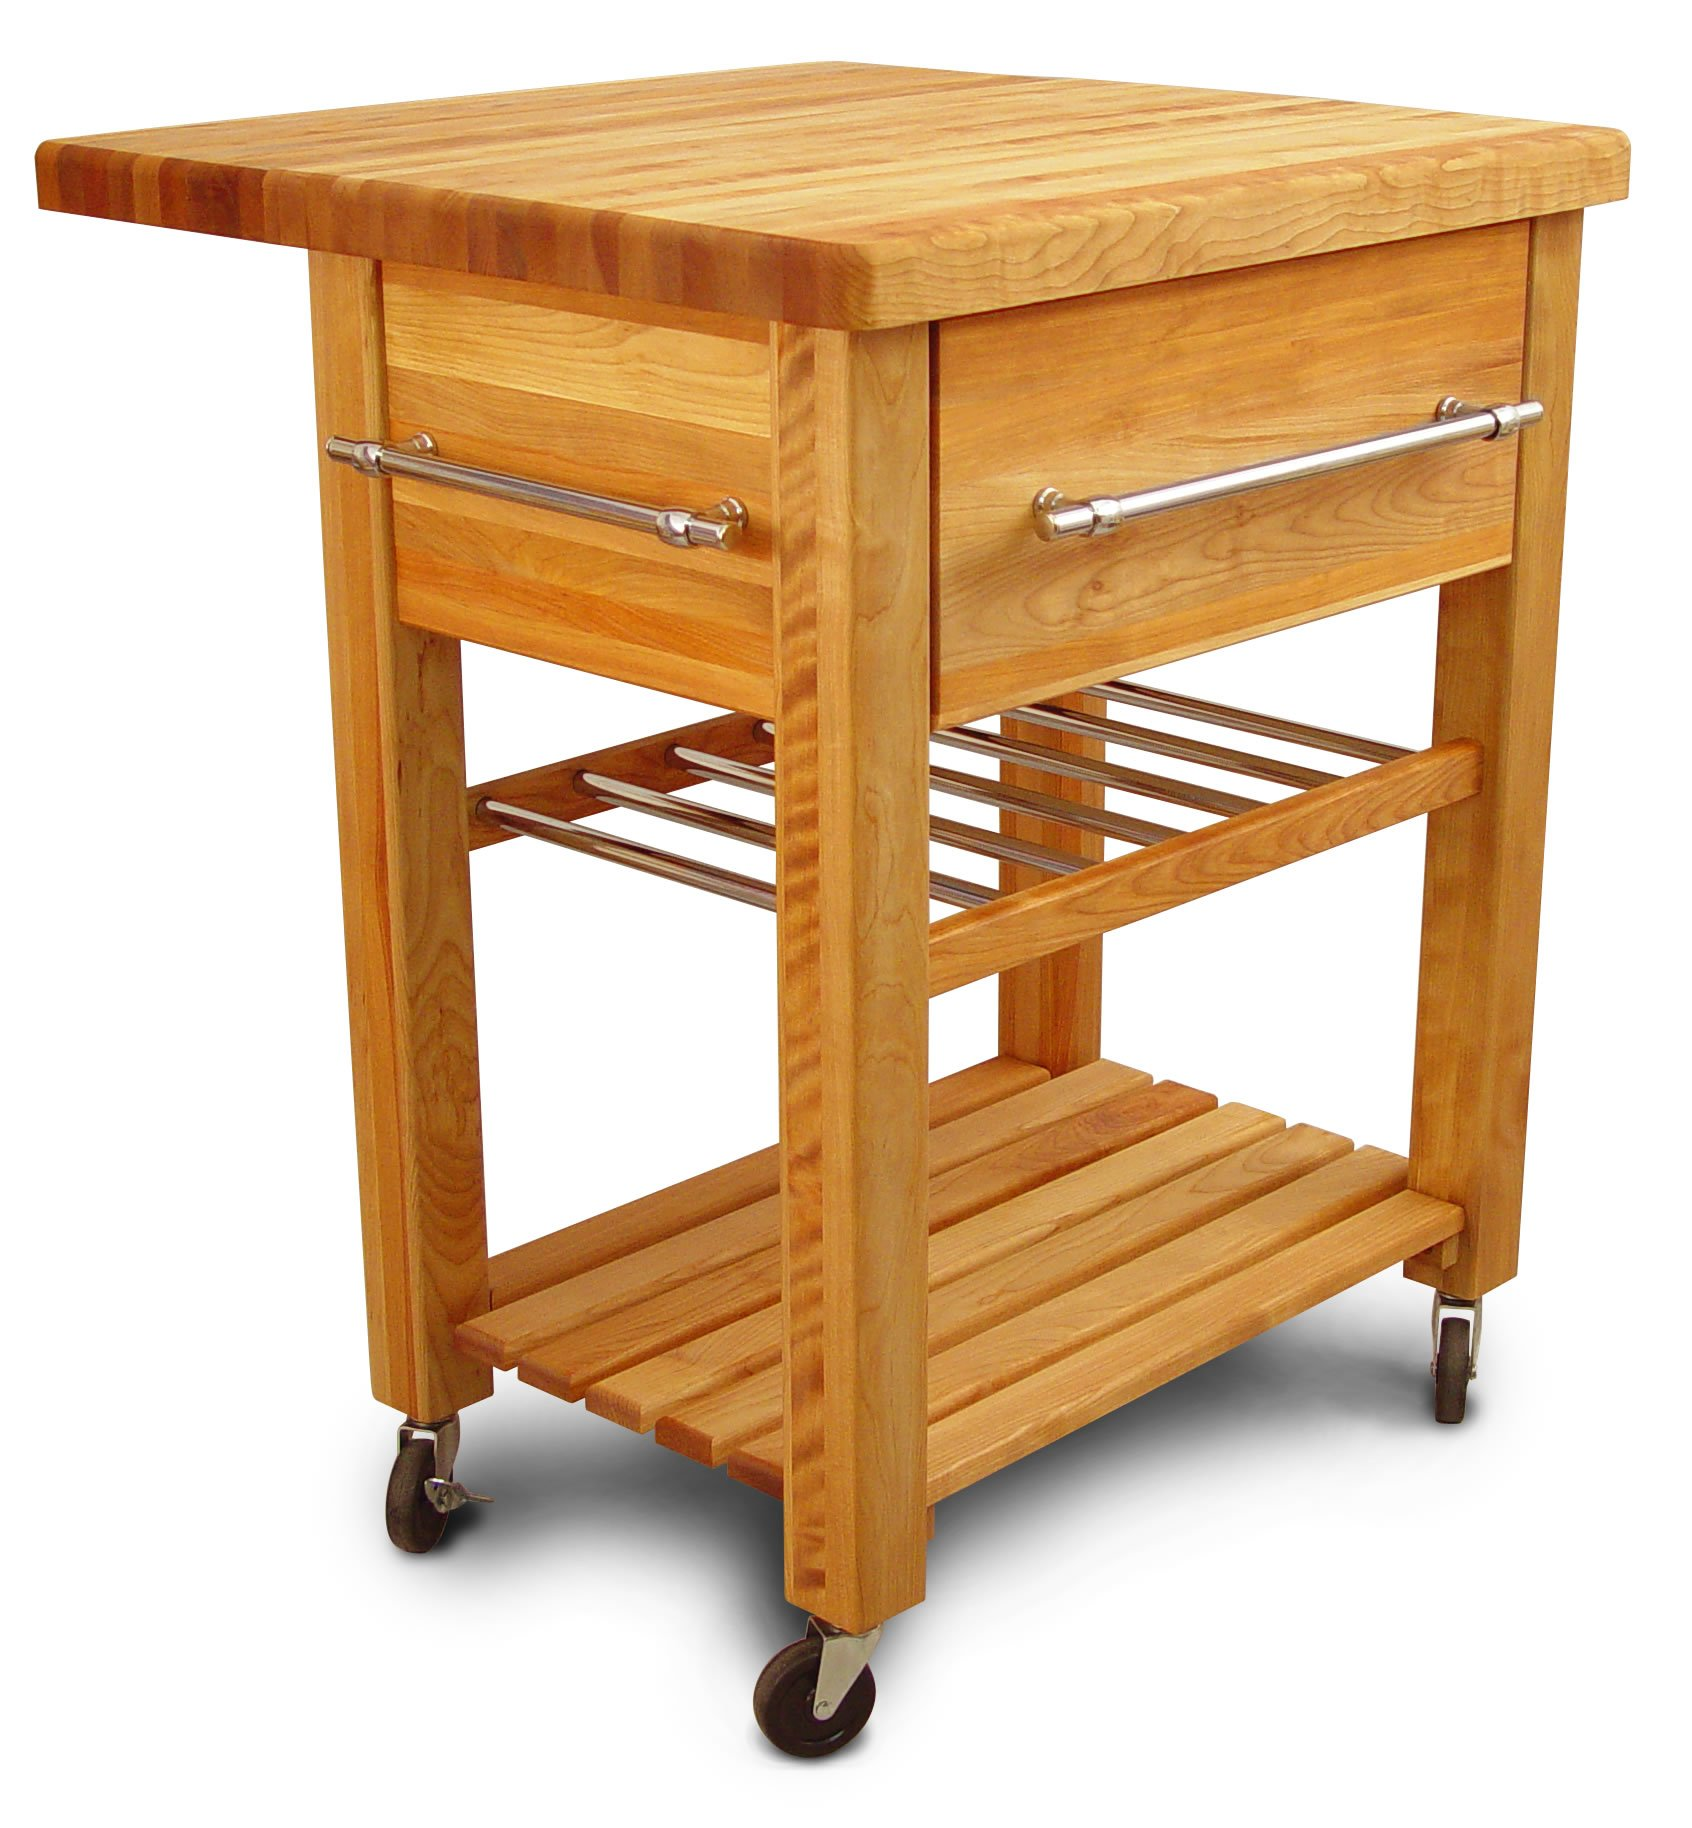 Catskill Craftsmen Baby Grand Workcenter with Drop Leaf and Wine Rack by Catskill Craftsmen